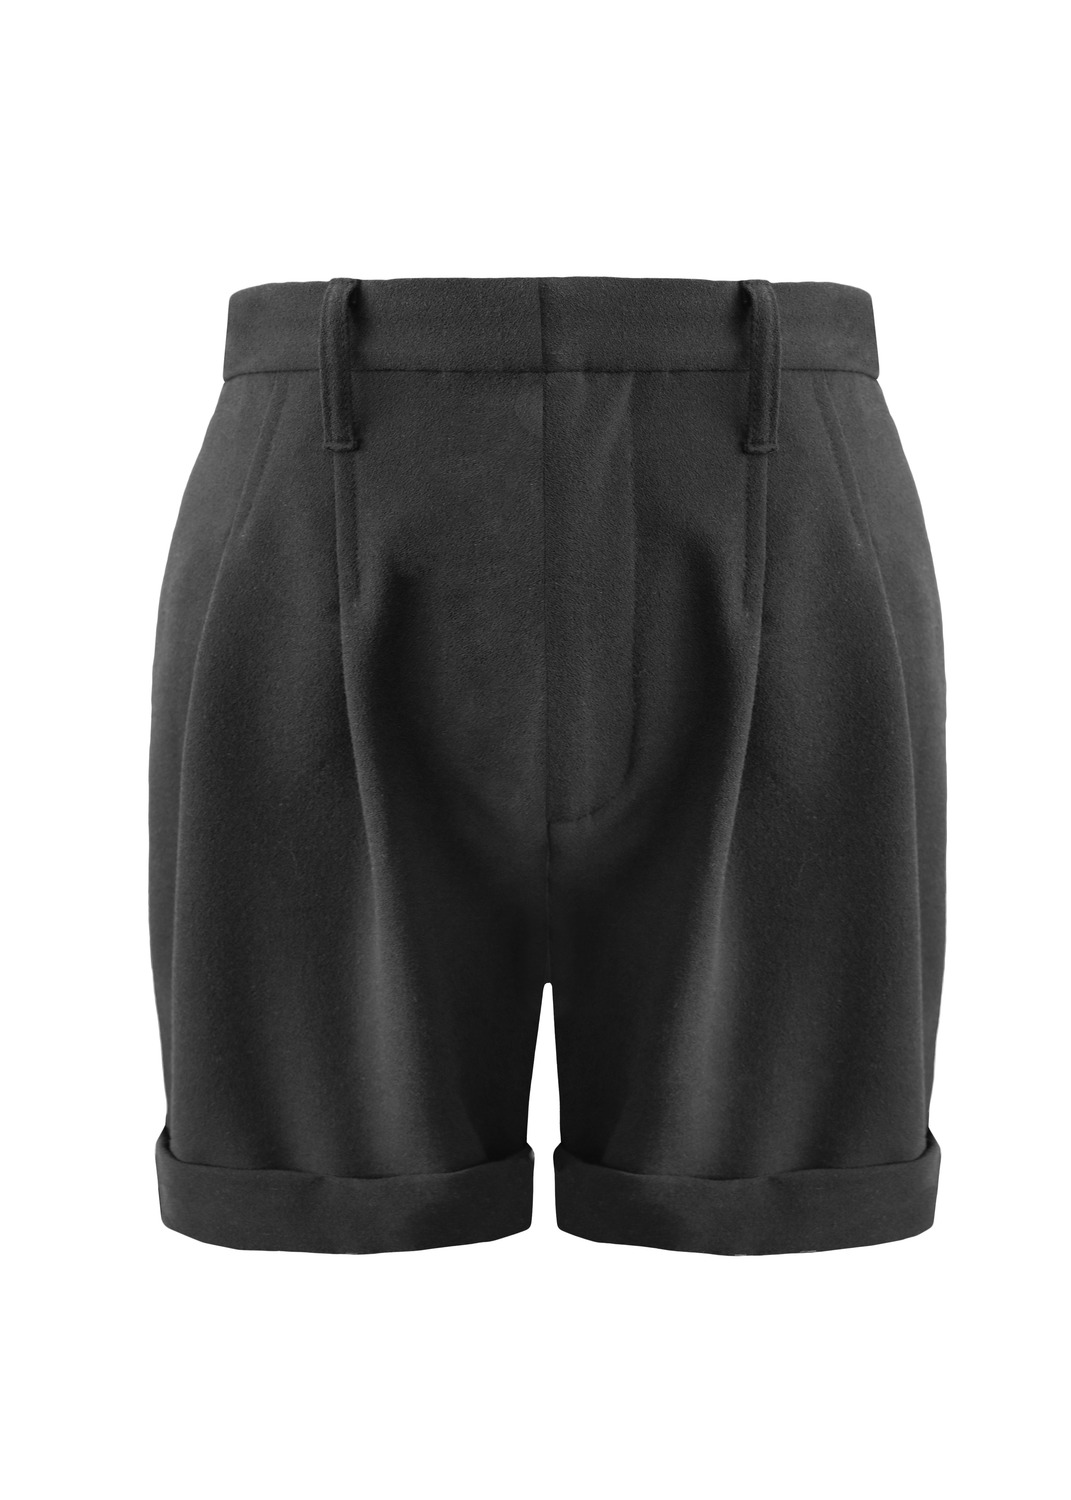 Front of black double pleated camp shorts